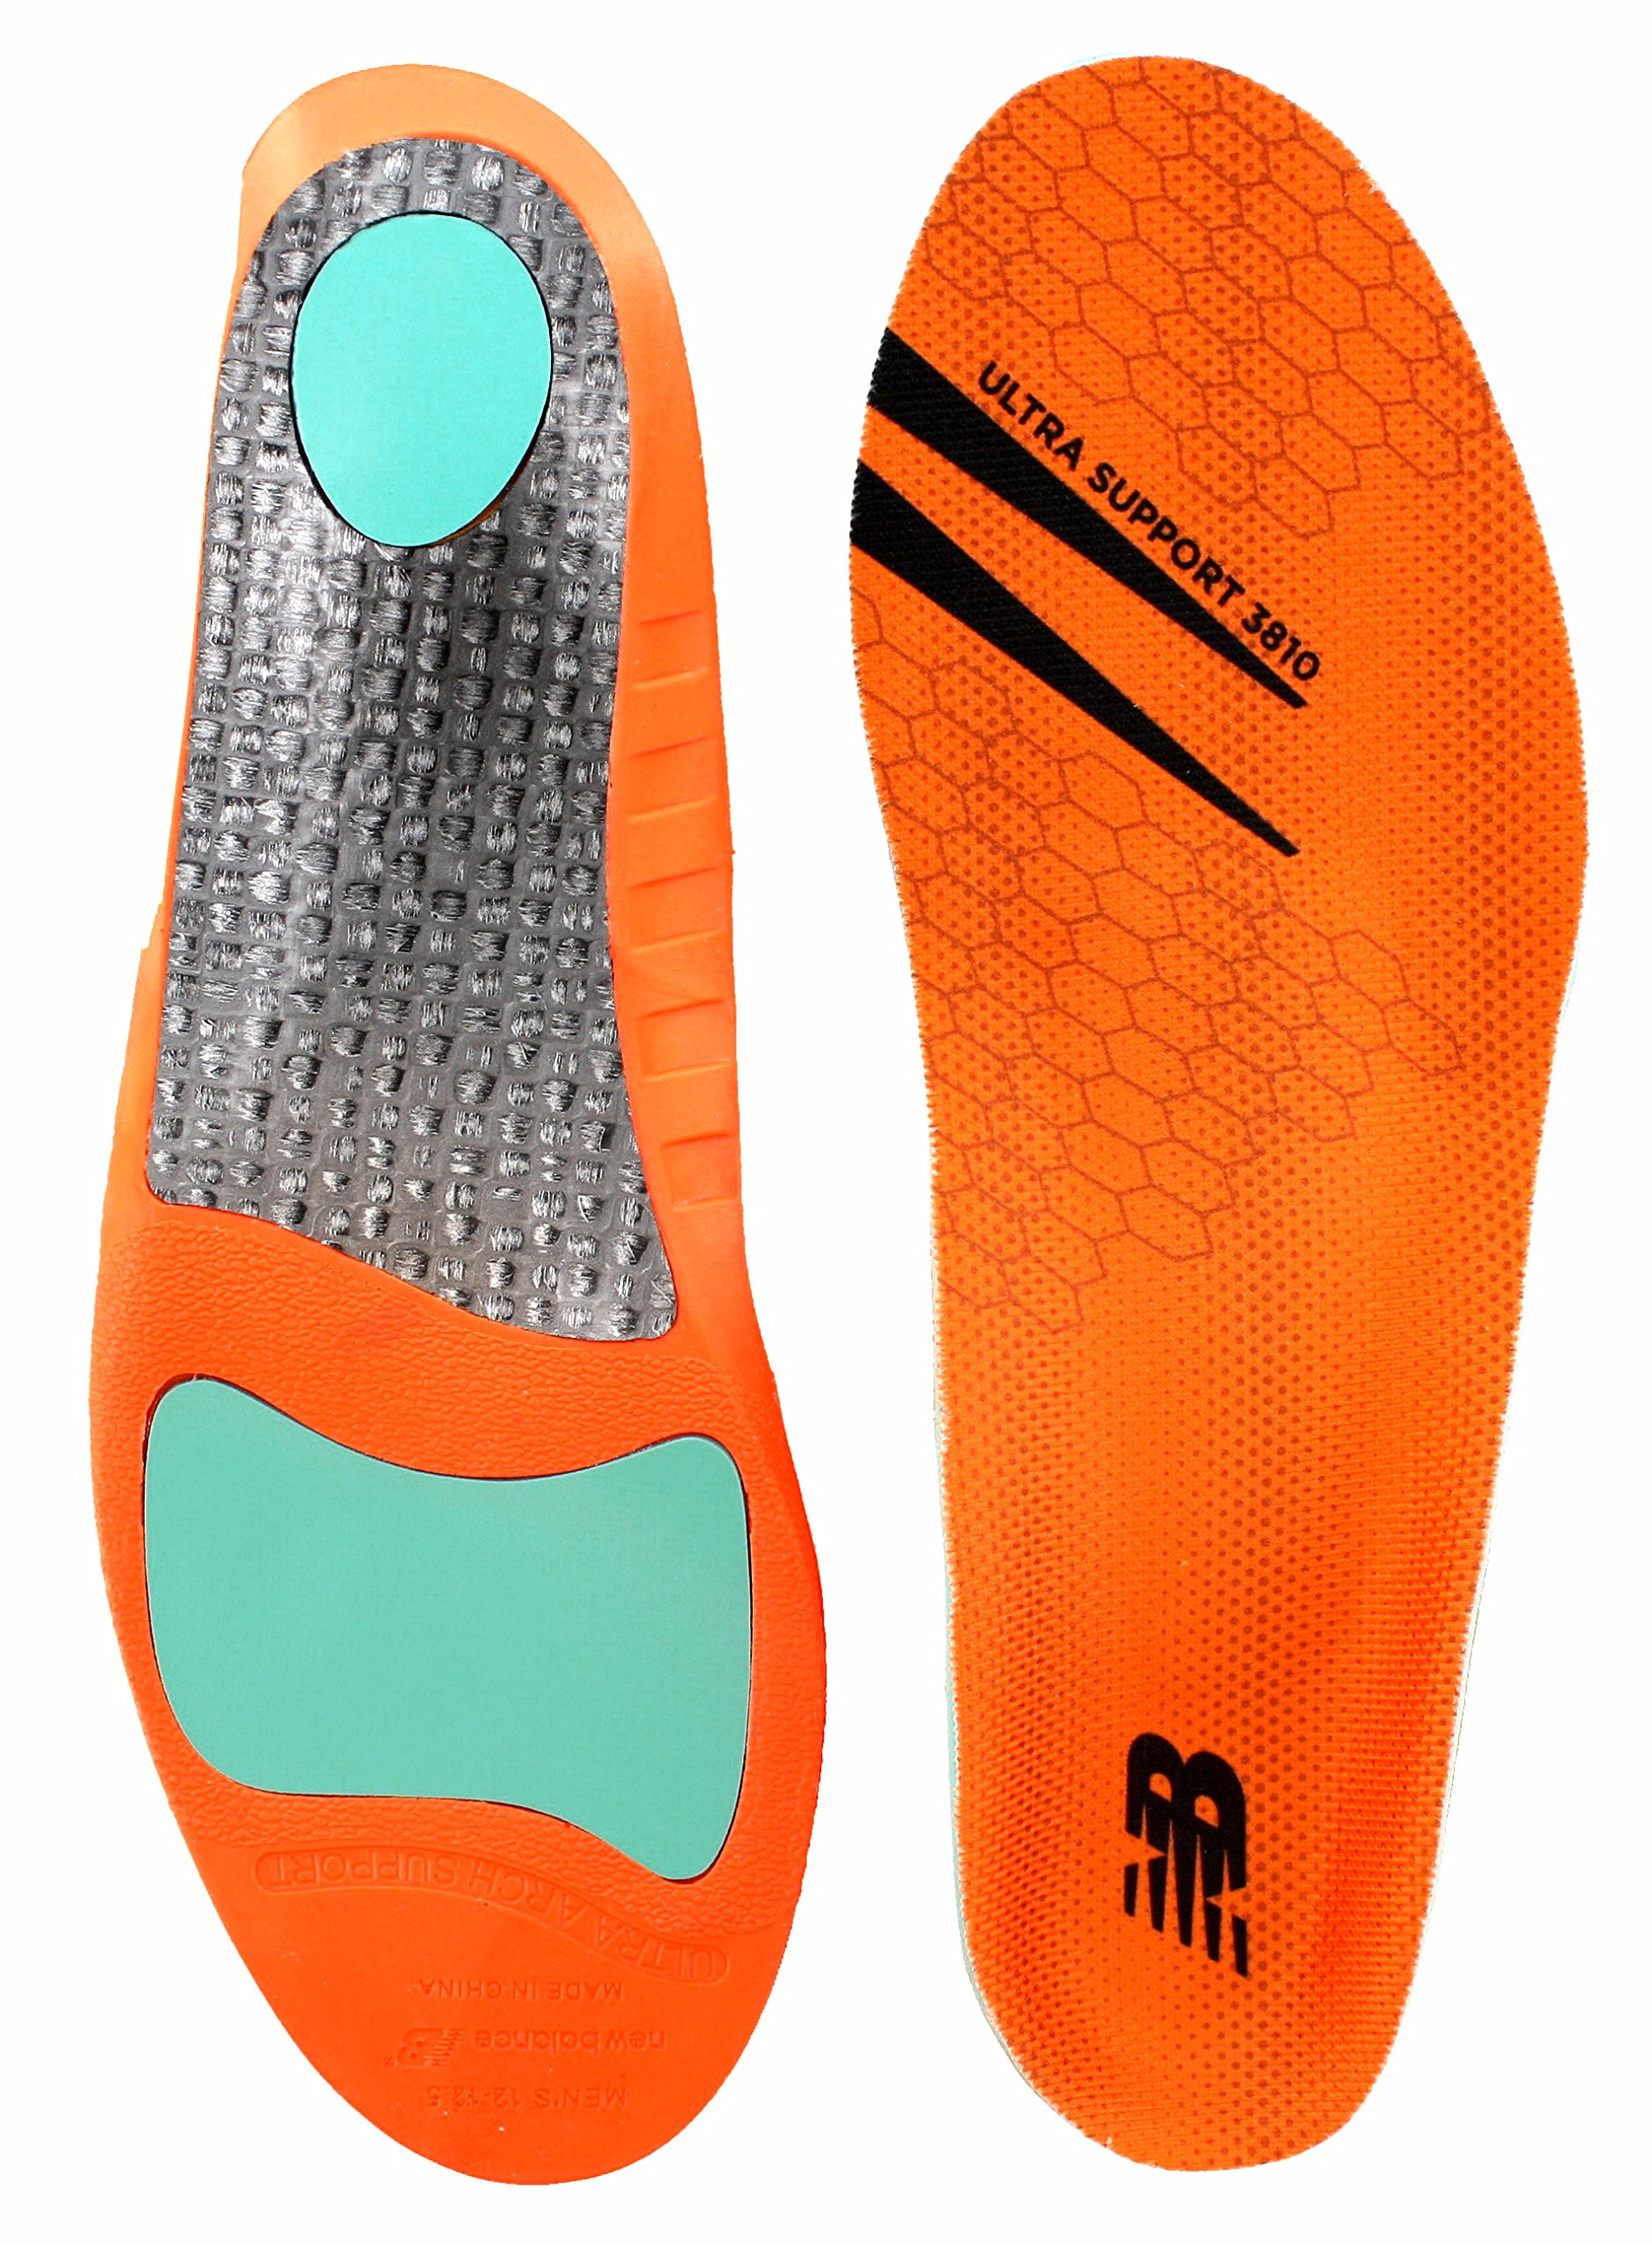 New Balance Insoles 3810 Ultra Support Insole Shoe, Orange, 10.5-11 W US Women / 9-9.5 M US Men by New Balance